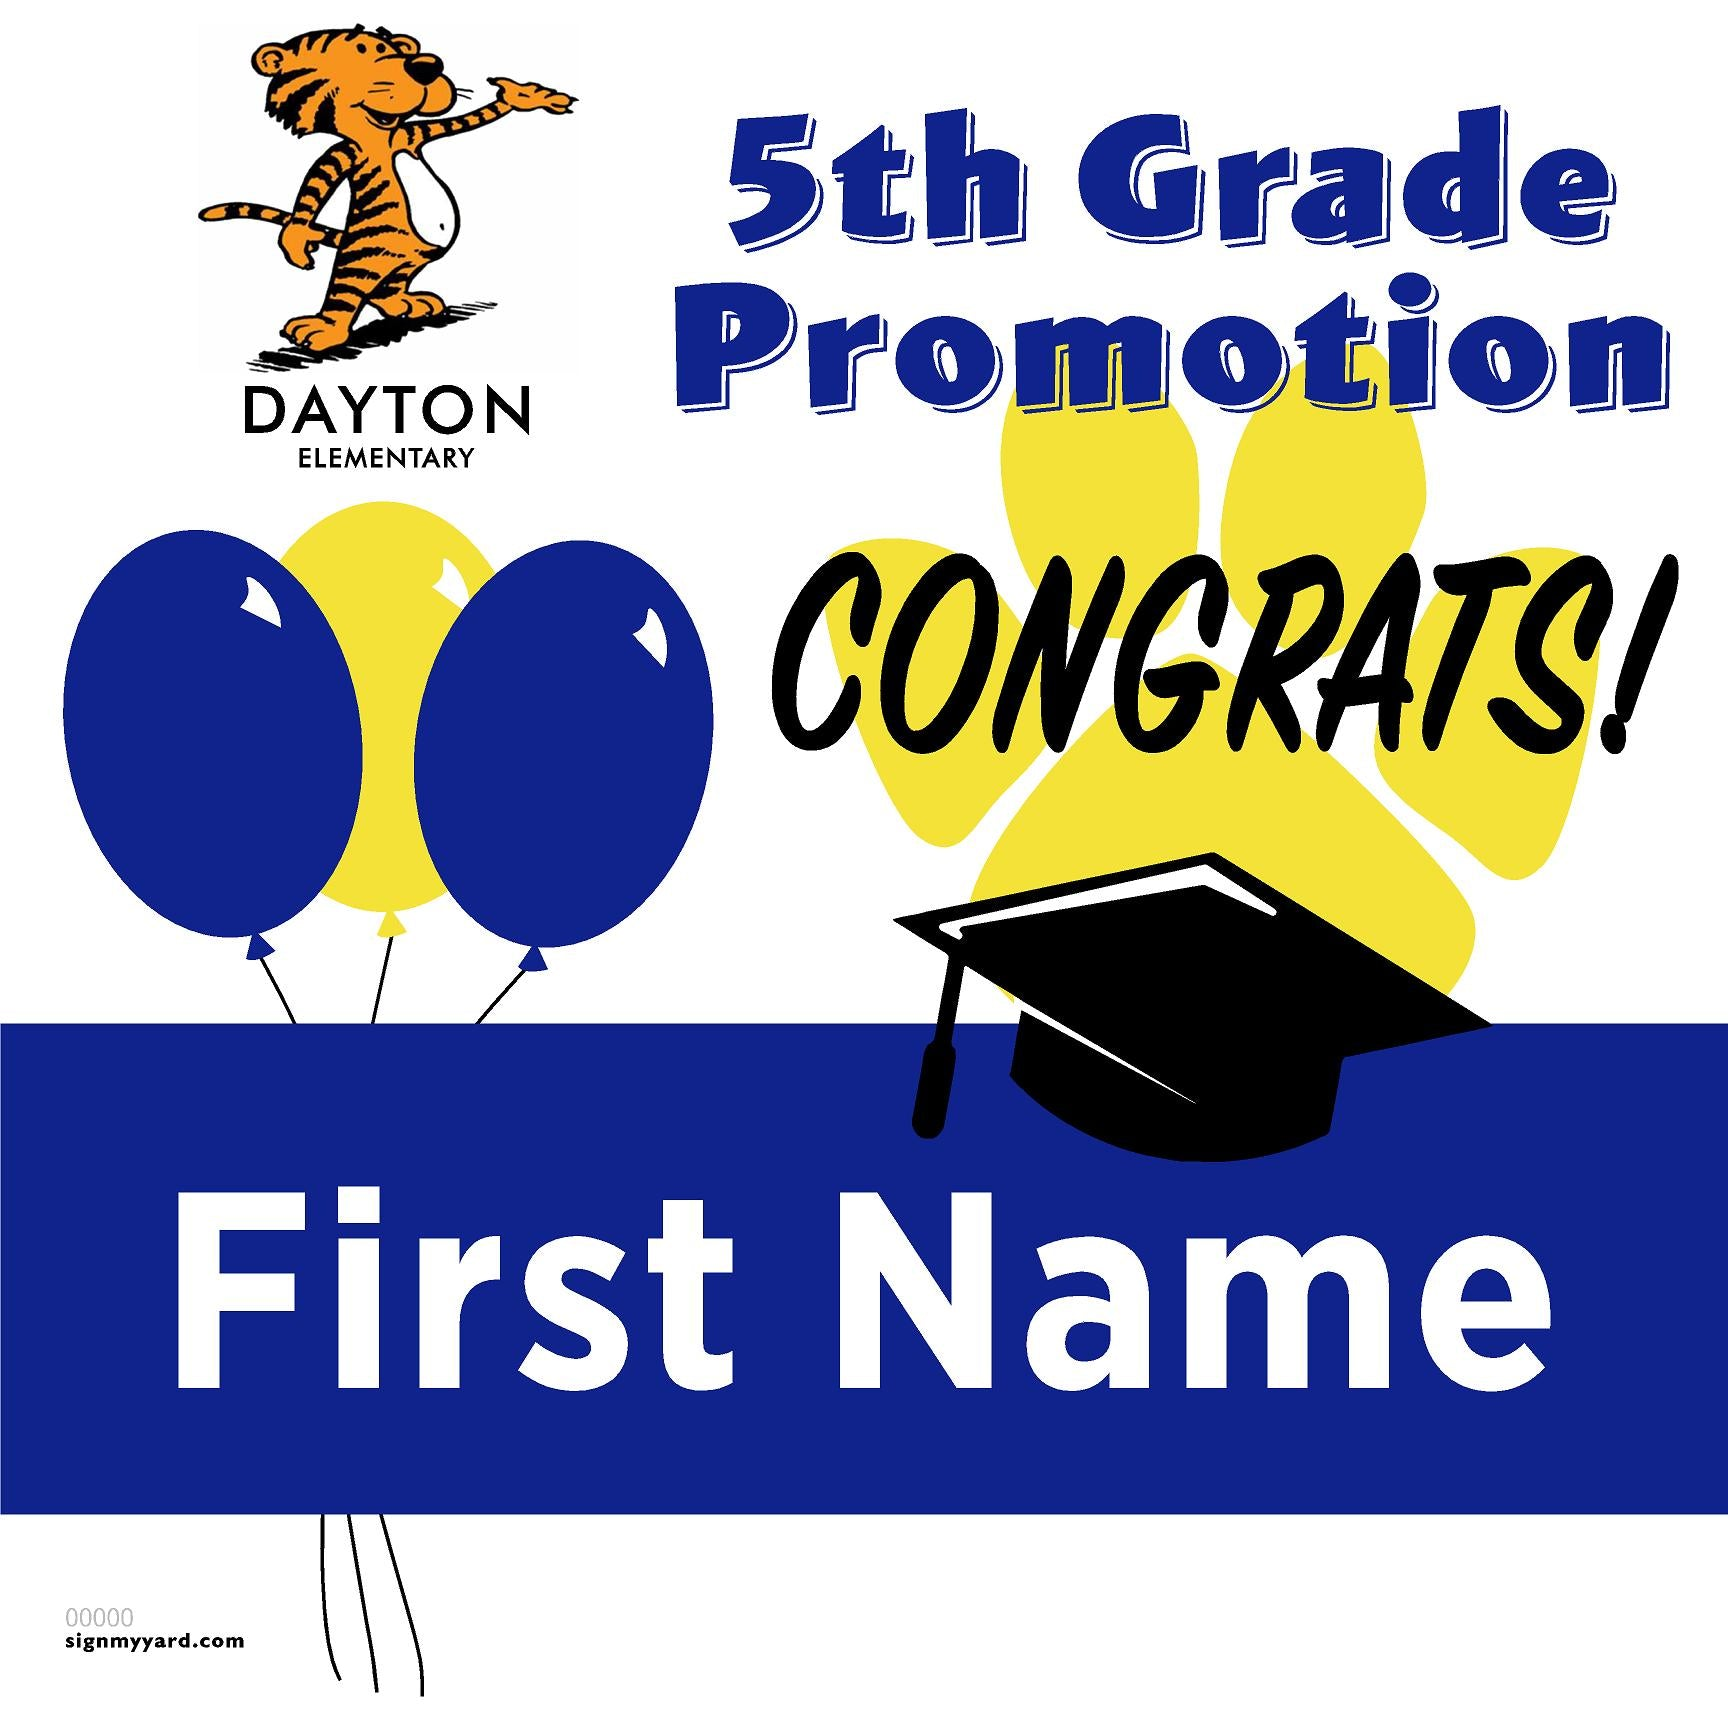 Dayton Elementary School 5th Grade Promotion 24x24 #shineon2027 Yard Sign (Option A)